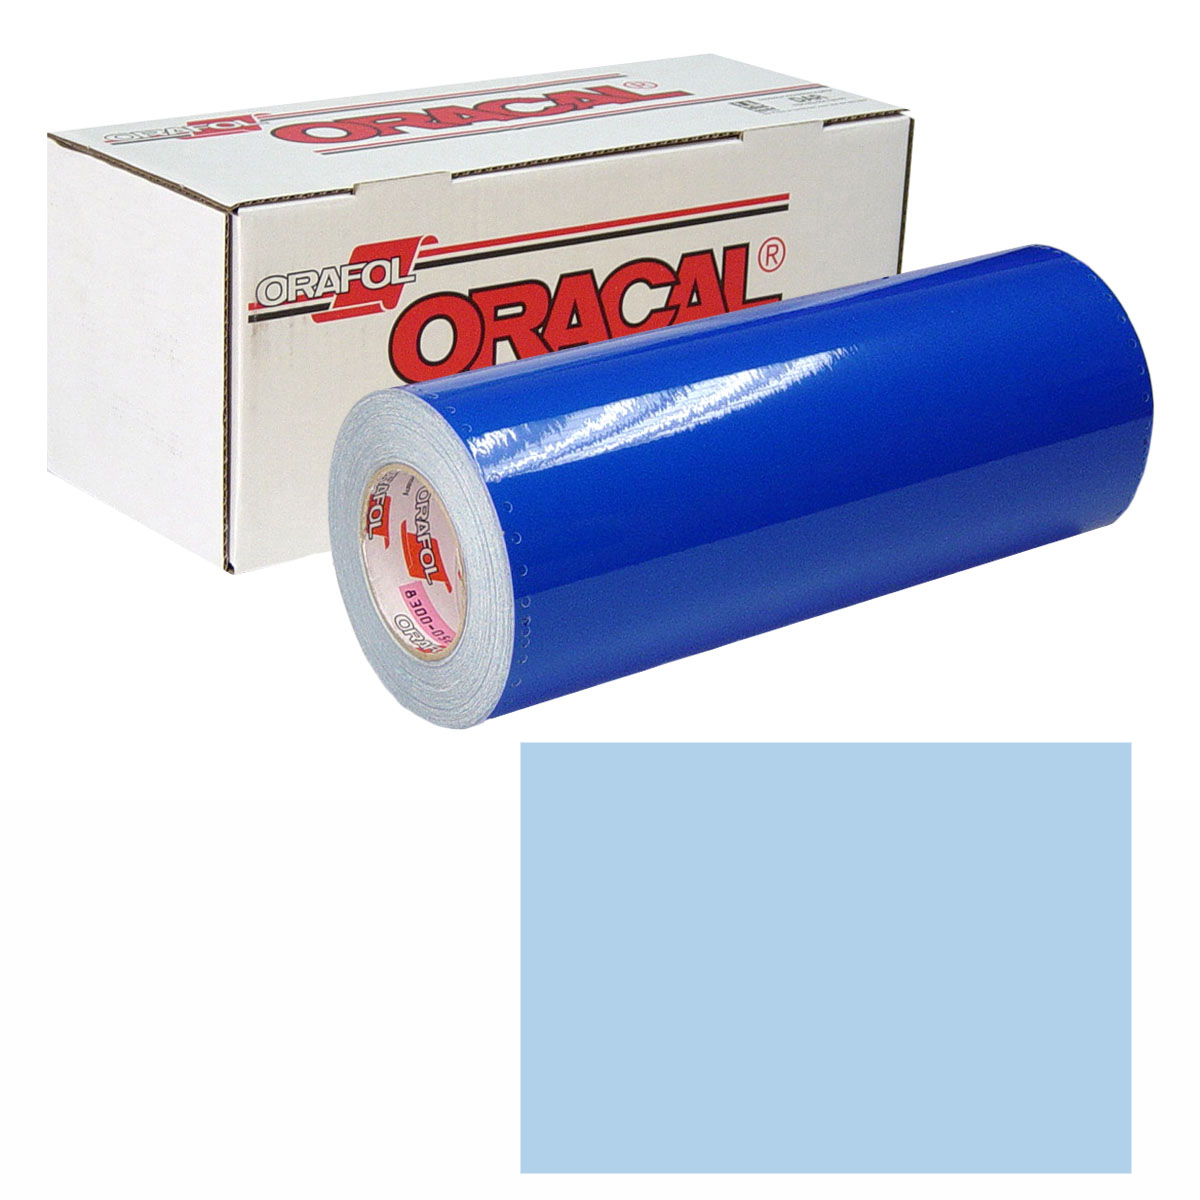 ORACAL 631 Unp 48in X 50yd 172 Powder Blue